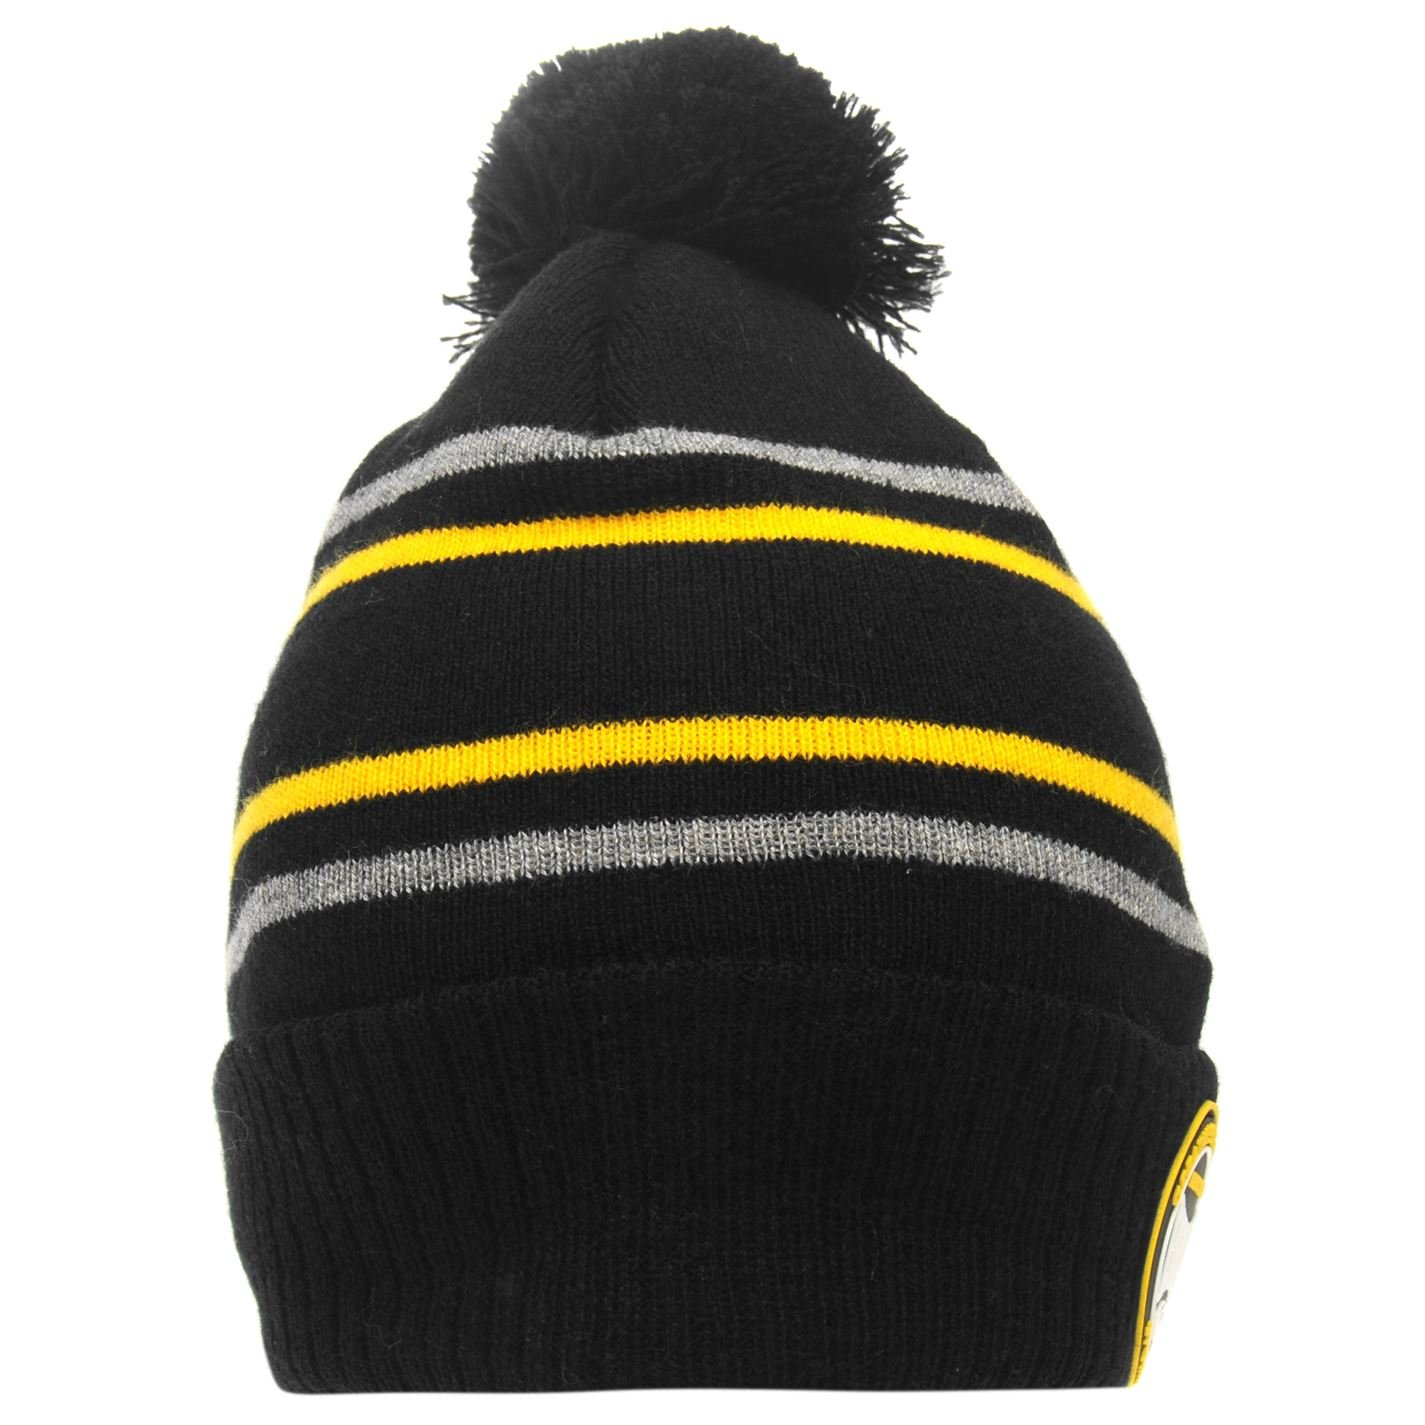 Mens Branded Lonsdale Knitted Construction 2 Stripe Beanie Hat Accessories